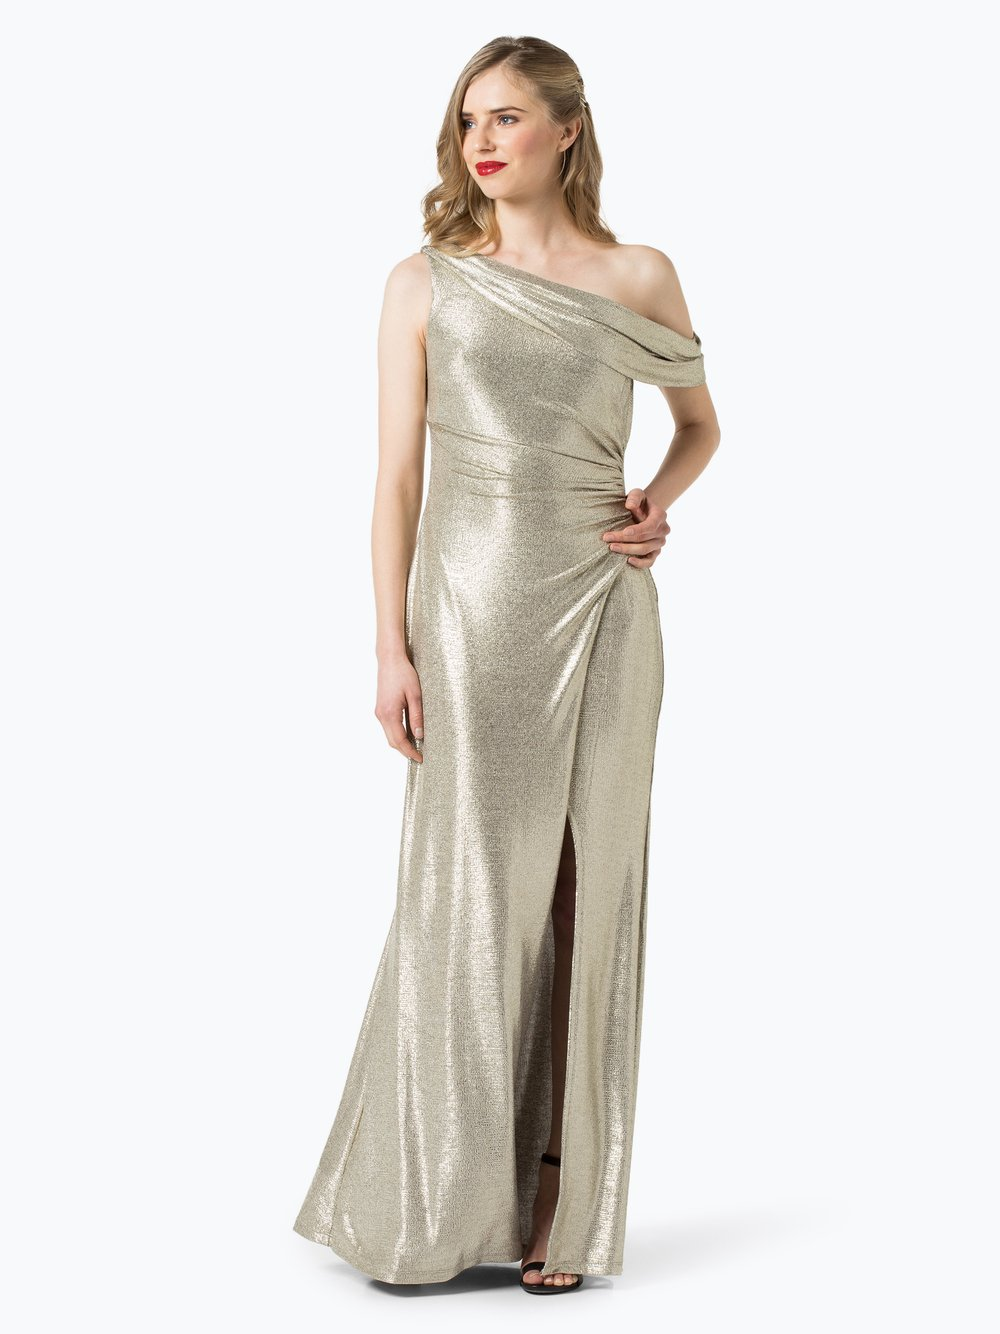 Abendkleid DANNITA - GOLD/METALLIC Ralph Lauren